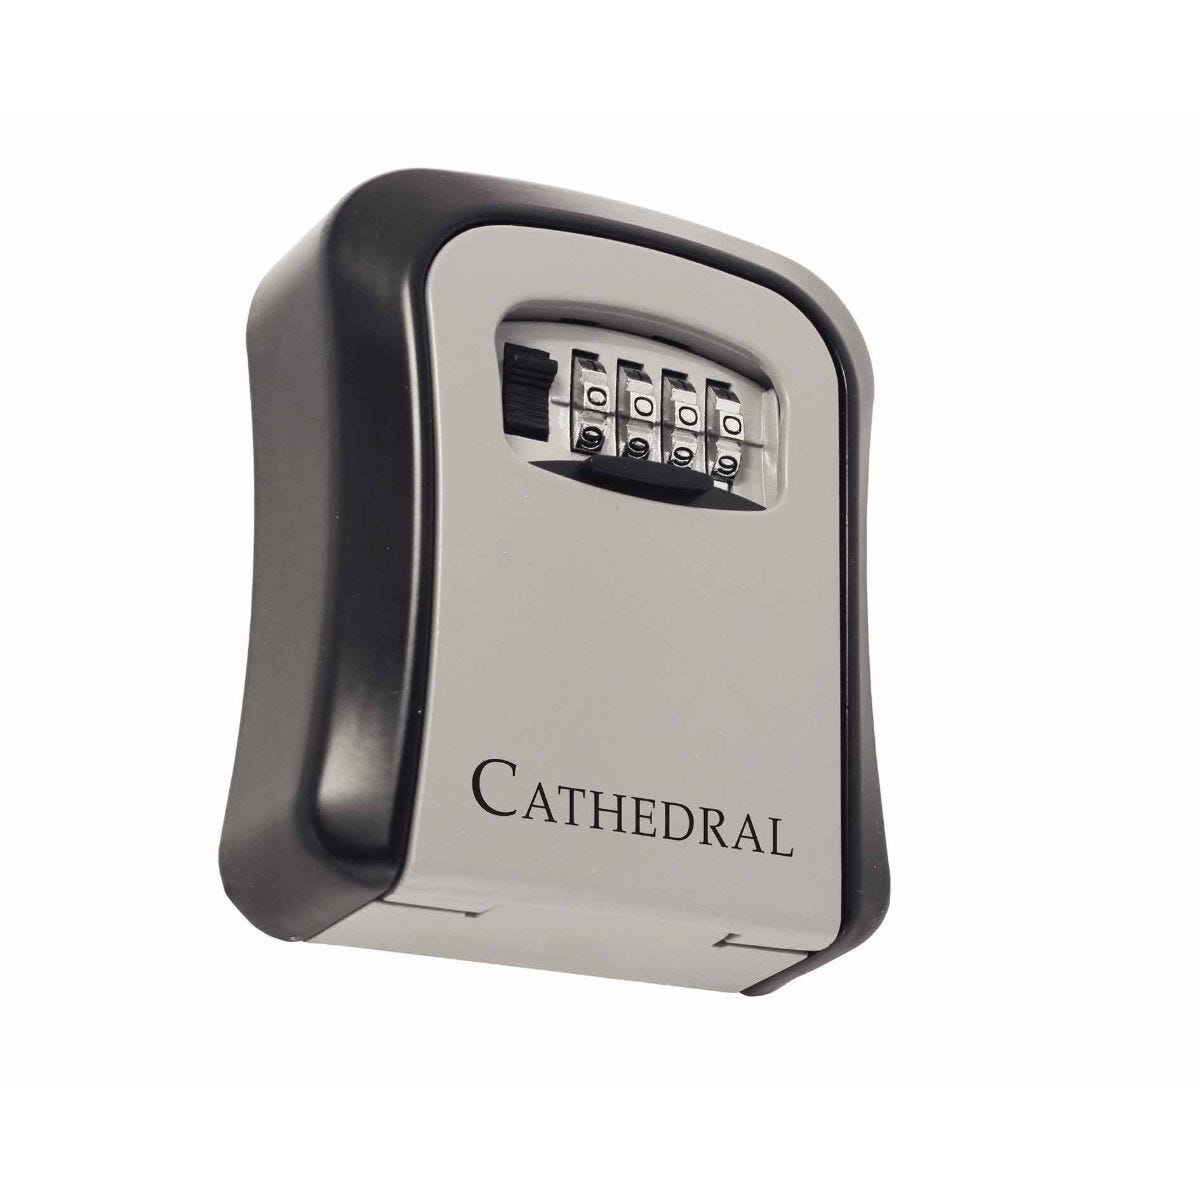 Cathedral Wall Mounted Security Key Safe Box